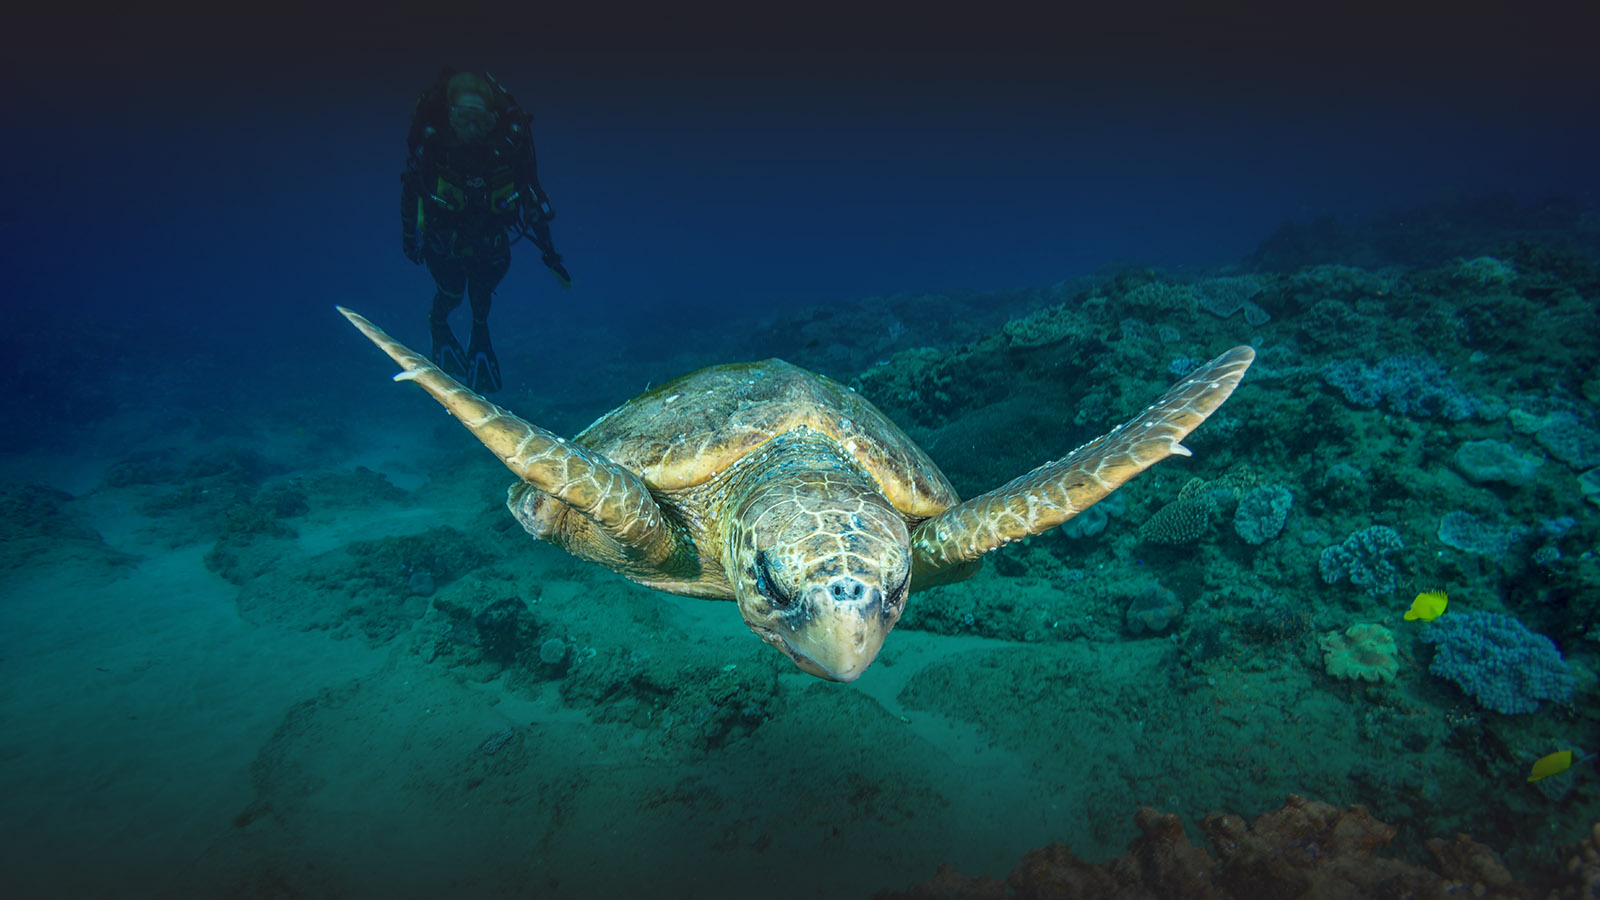 white-pearl resort mozambique-lodges-zitundo-zambia-in-style-private-beach-exclusive-location-diving-turtle